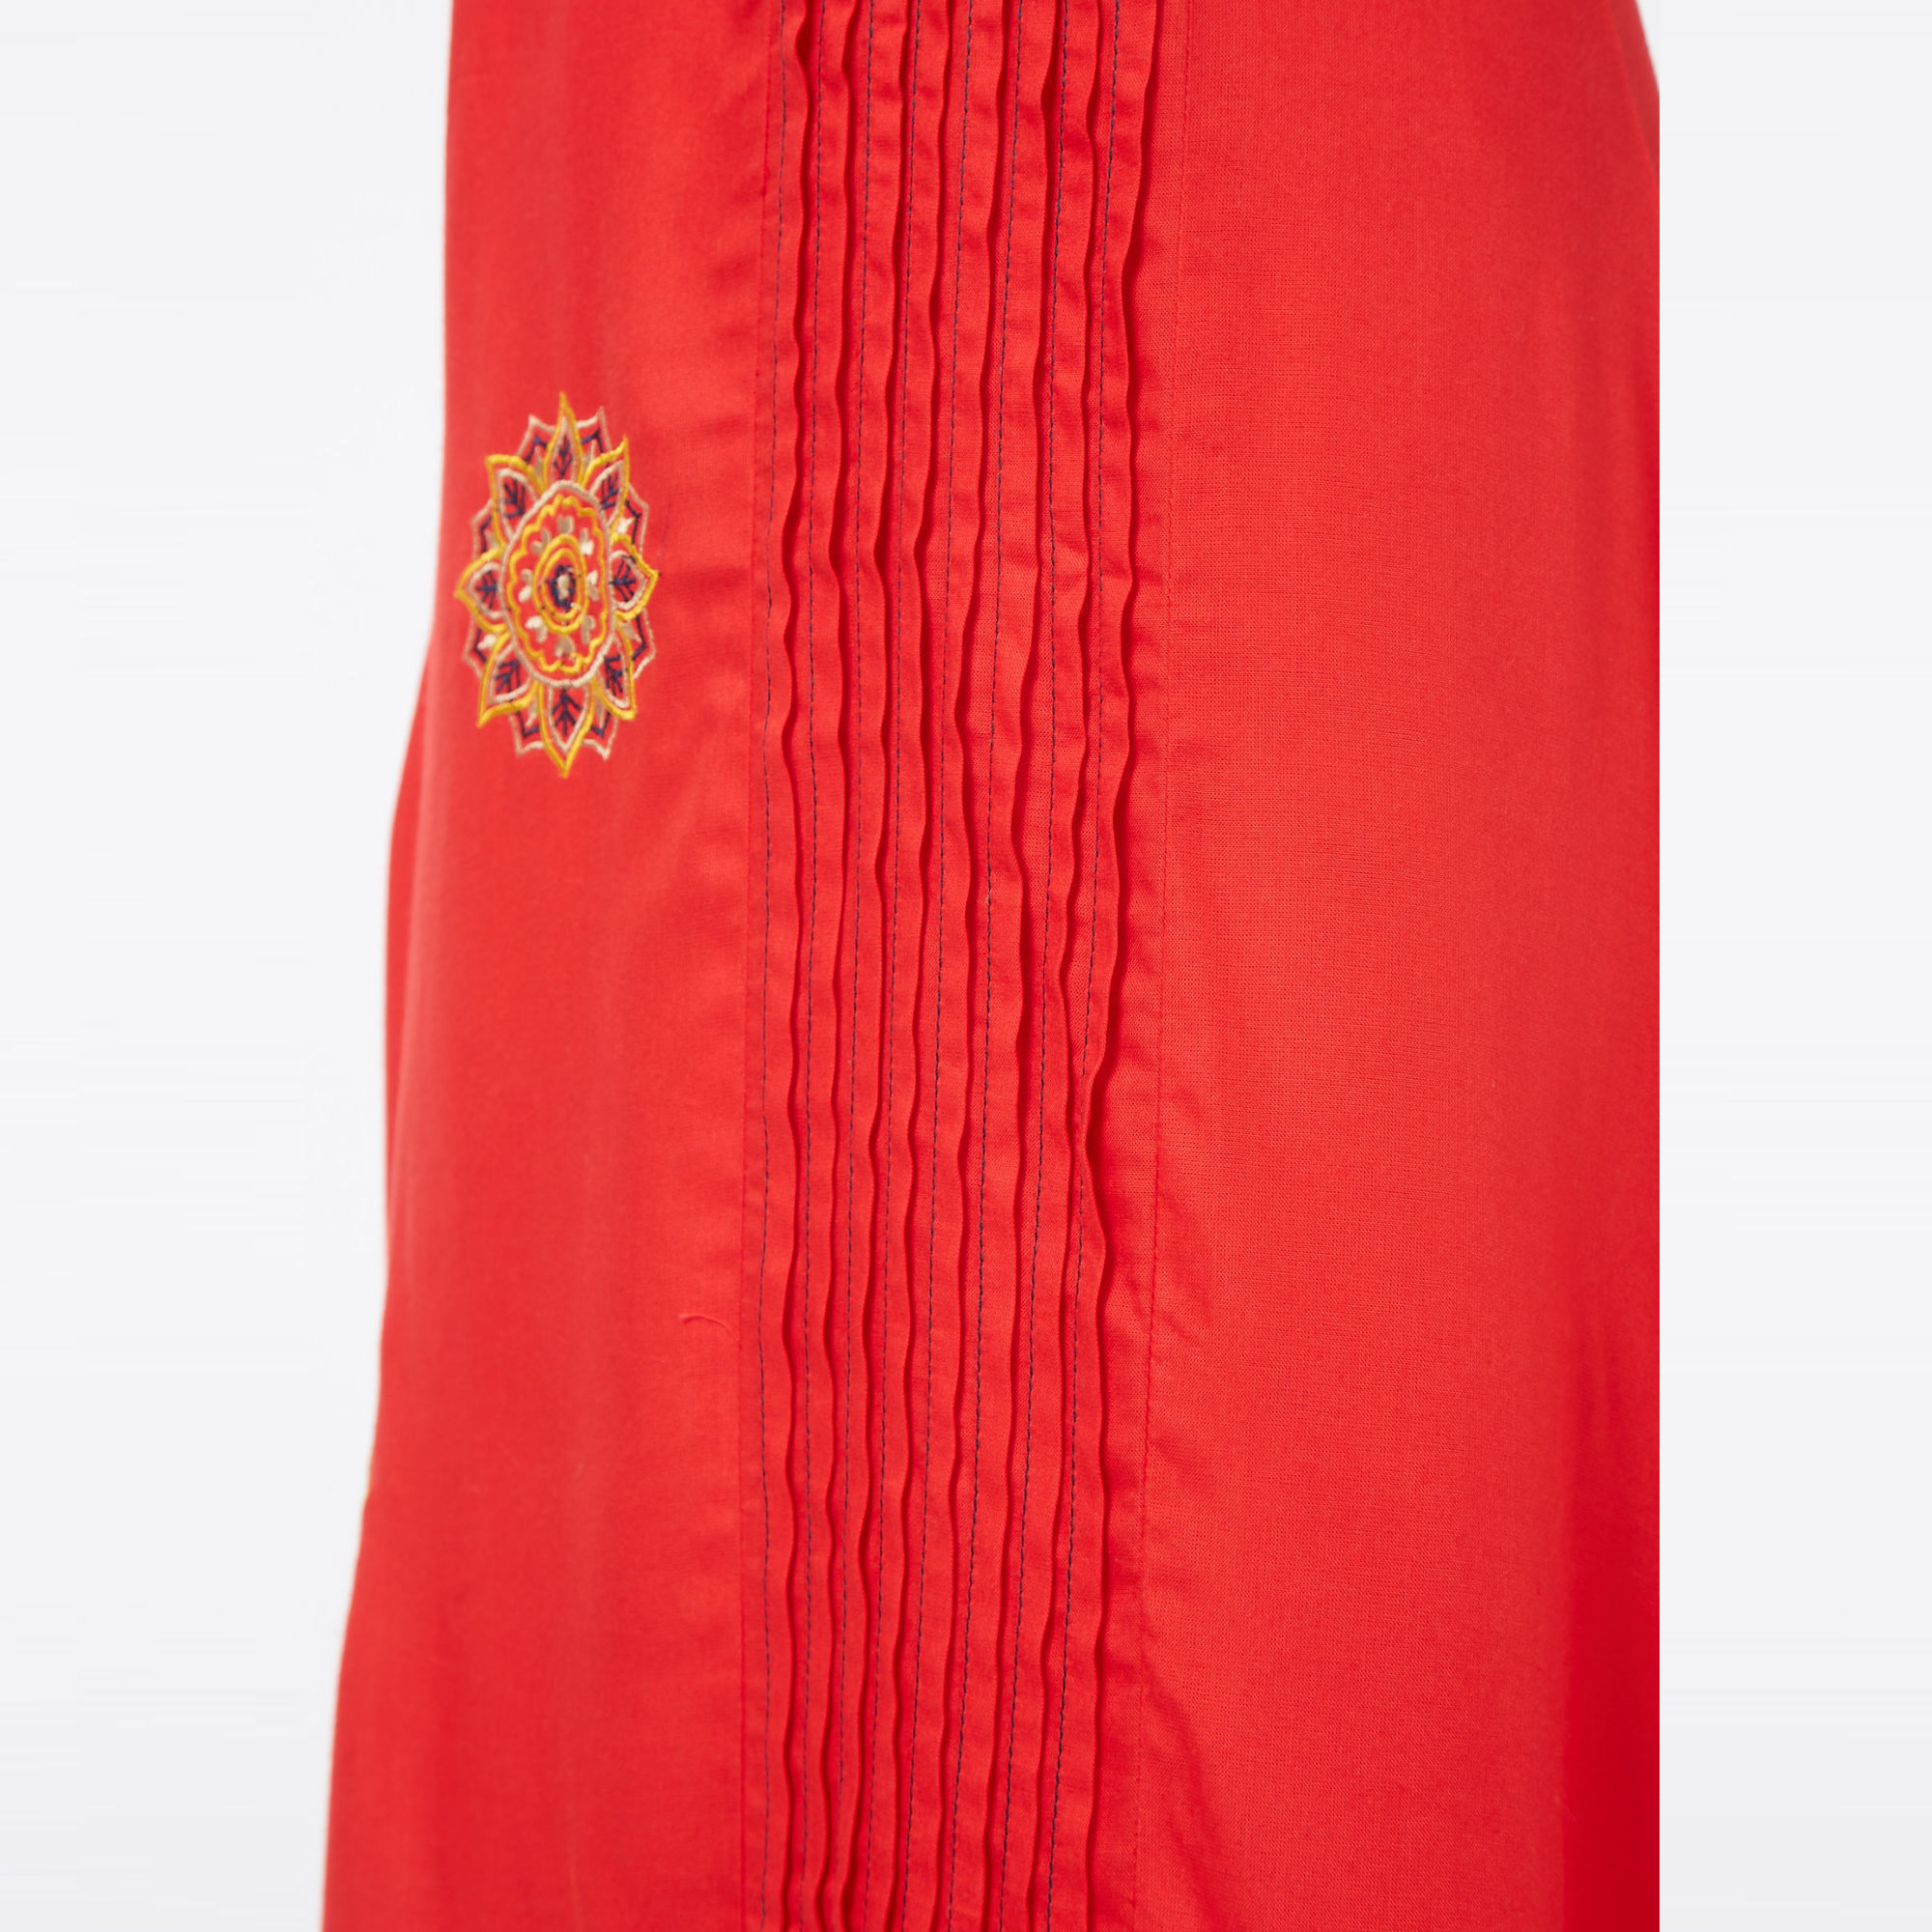 Exceptional Red Colored Partywear Embroidered Liva Cotton Long Kurti